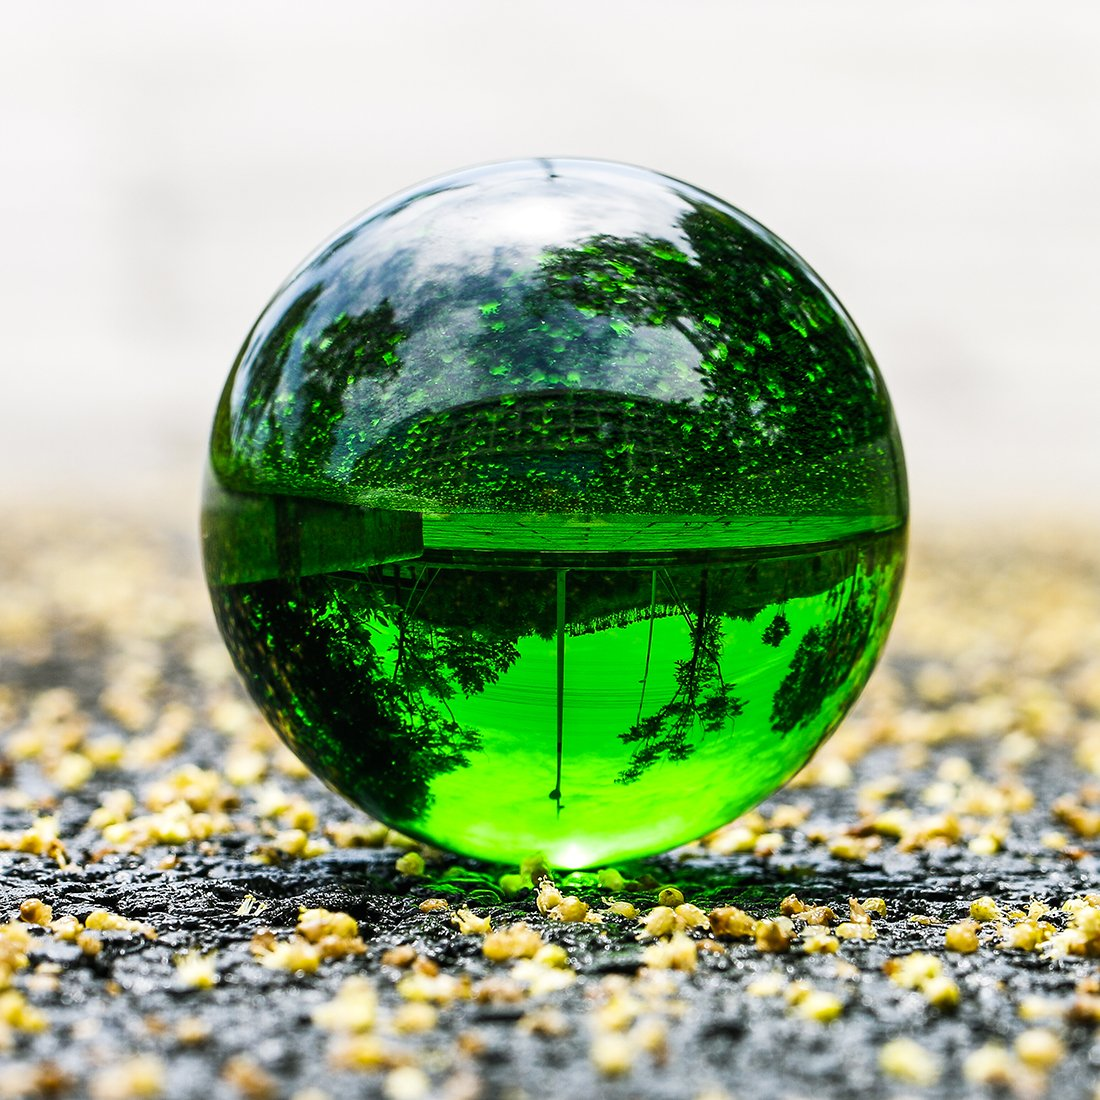 H&D 100mm Crystal Sphere Meditation Ball Stand Art Decor K9 Crystal Prop Magic Crystal Healing Ball Photography Home Decoration (Green)